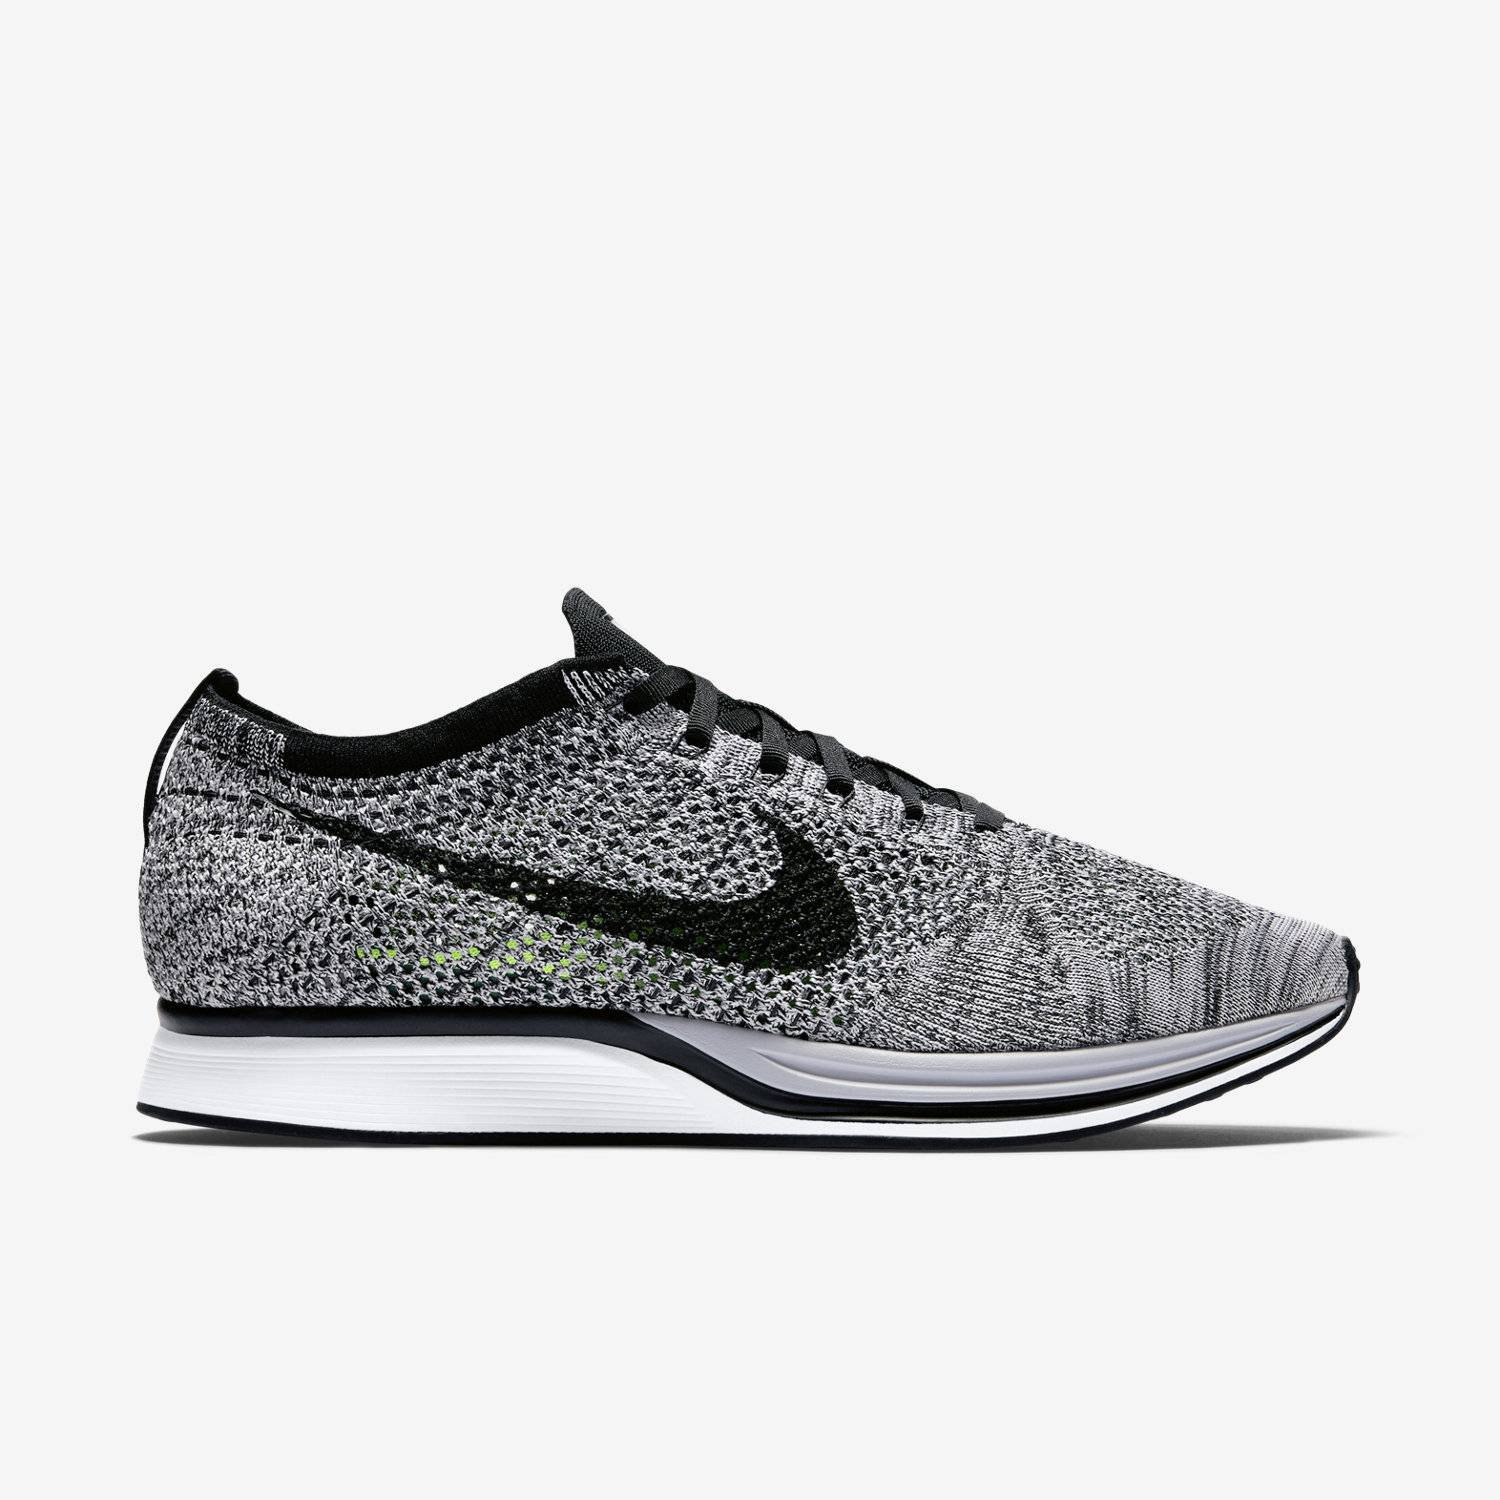 low priced f3572 08c94 ... top quality flyknit racer oreo 2.0 nike 526628 012 goat cbd2a a3390